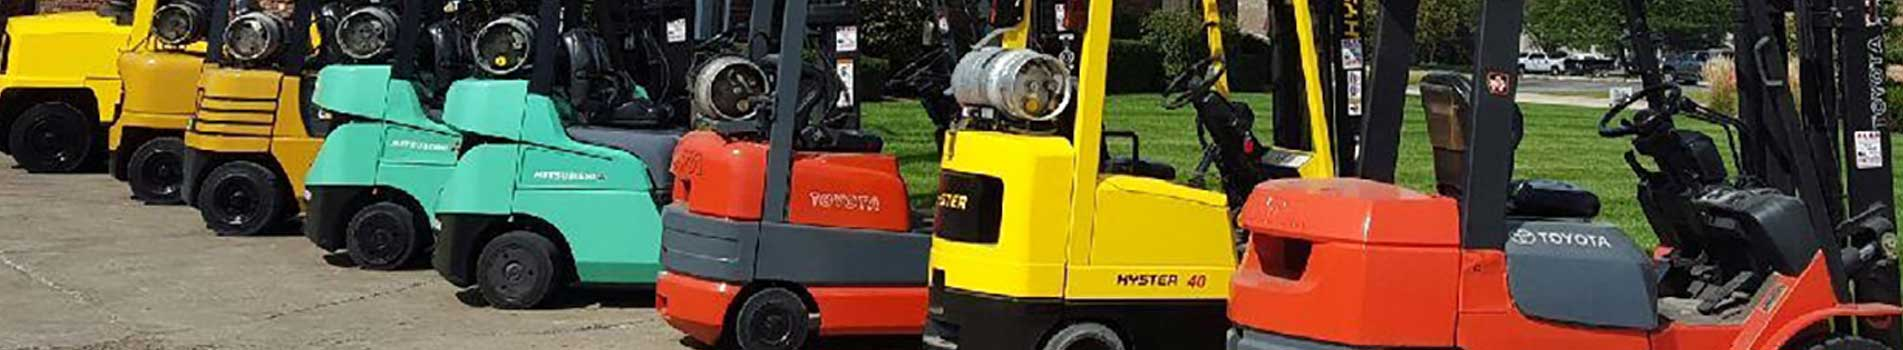 1 Forklift Dealer | Top Quality Forklifts with Same Day Delivery